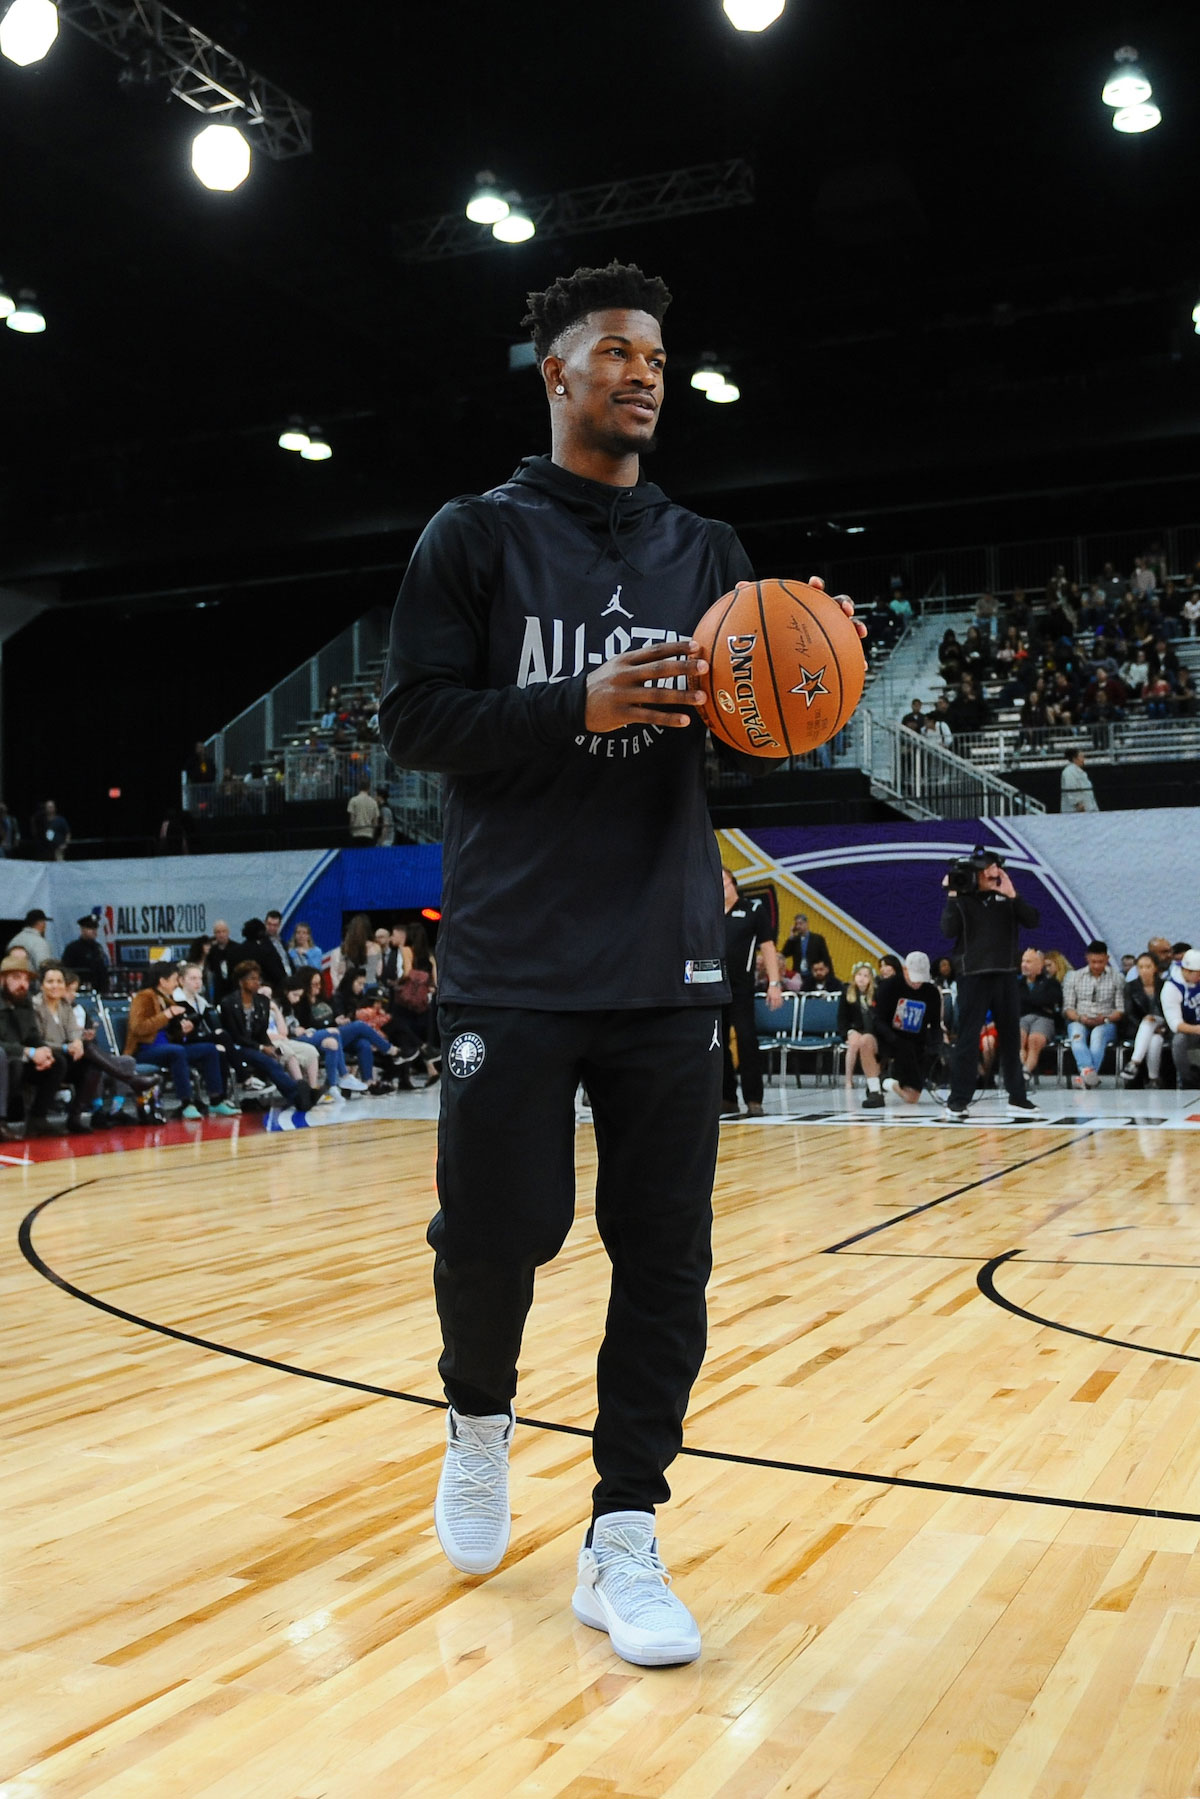 Jimmy Butler #23 of Team Stephen dribbles the ball during NBA All-Star Media Day & Practice as part of 2018 NBA All-Star Weekend at the Los Angeles Convention Center on February 17, 2018 in Los Angeles, California.